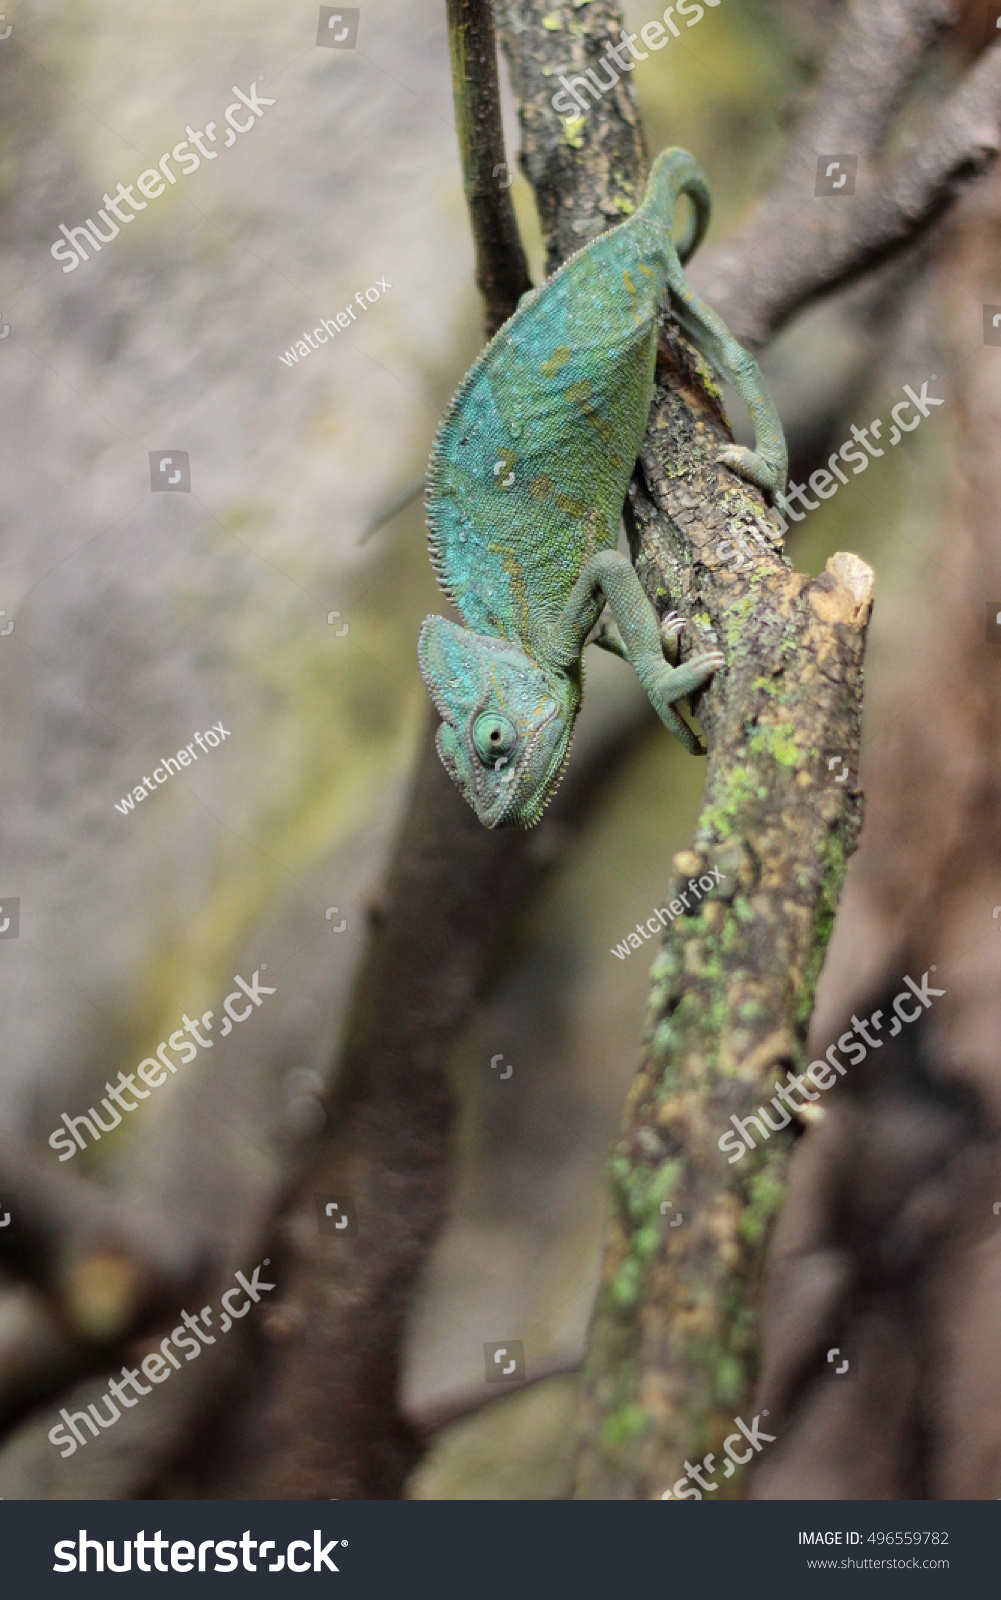 chameleon iguana stock photo 496559782 shutterstock